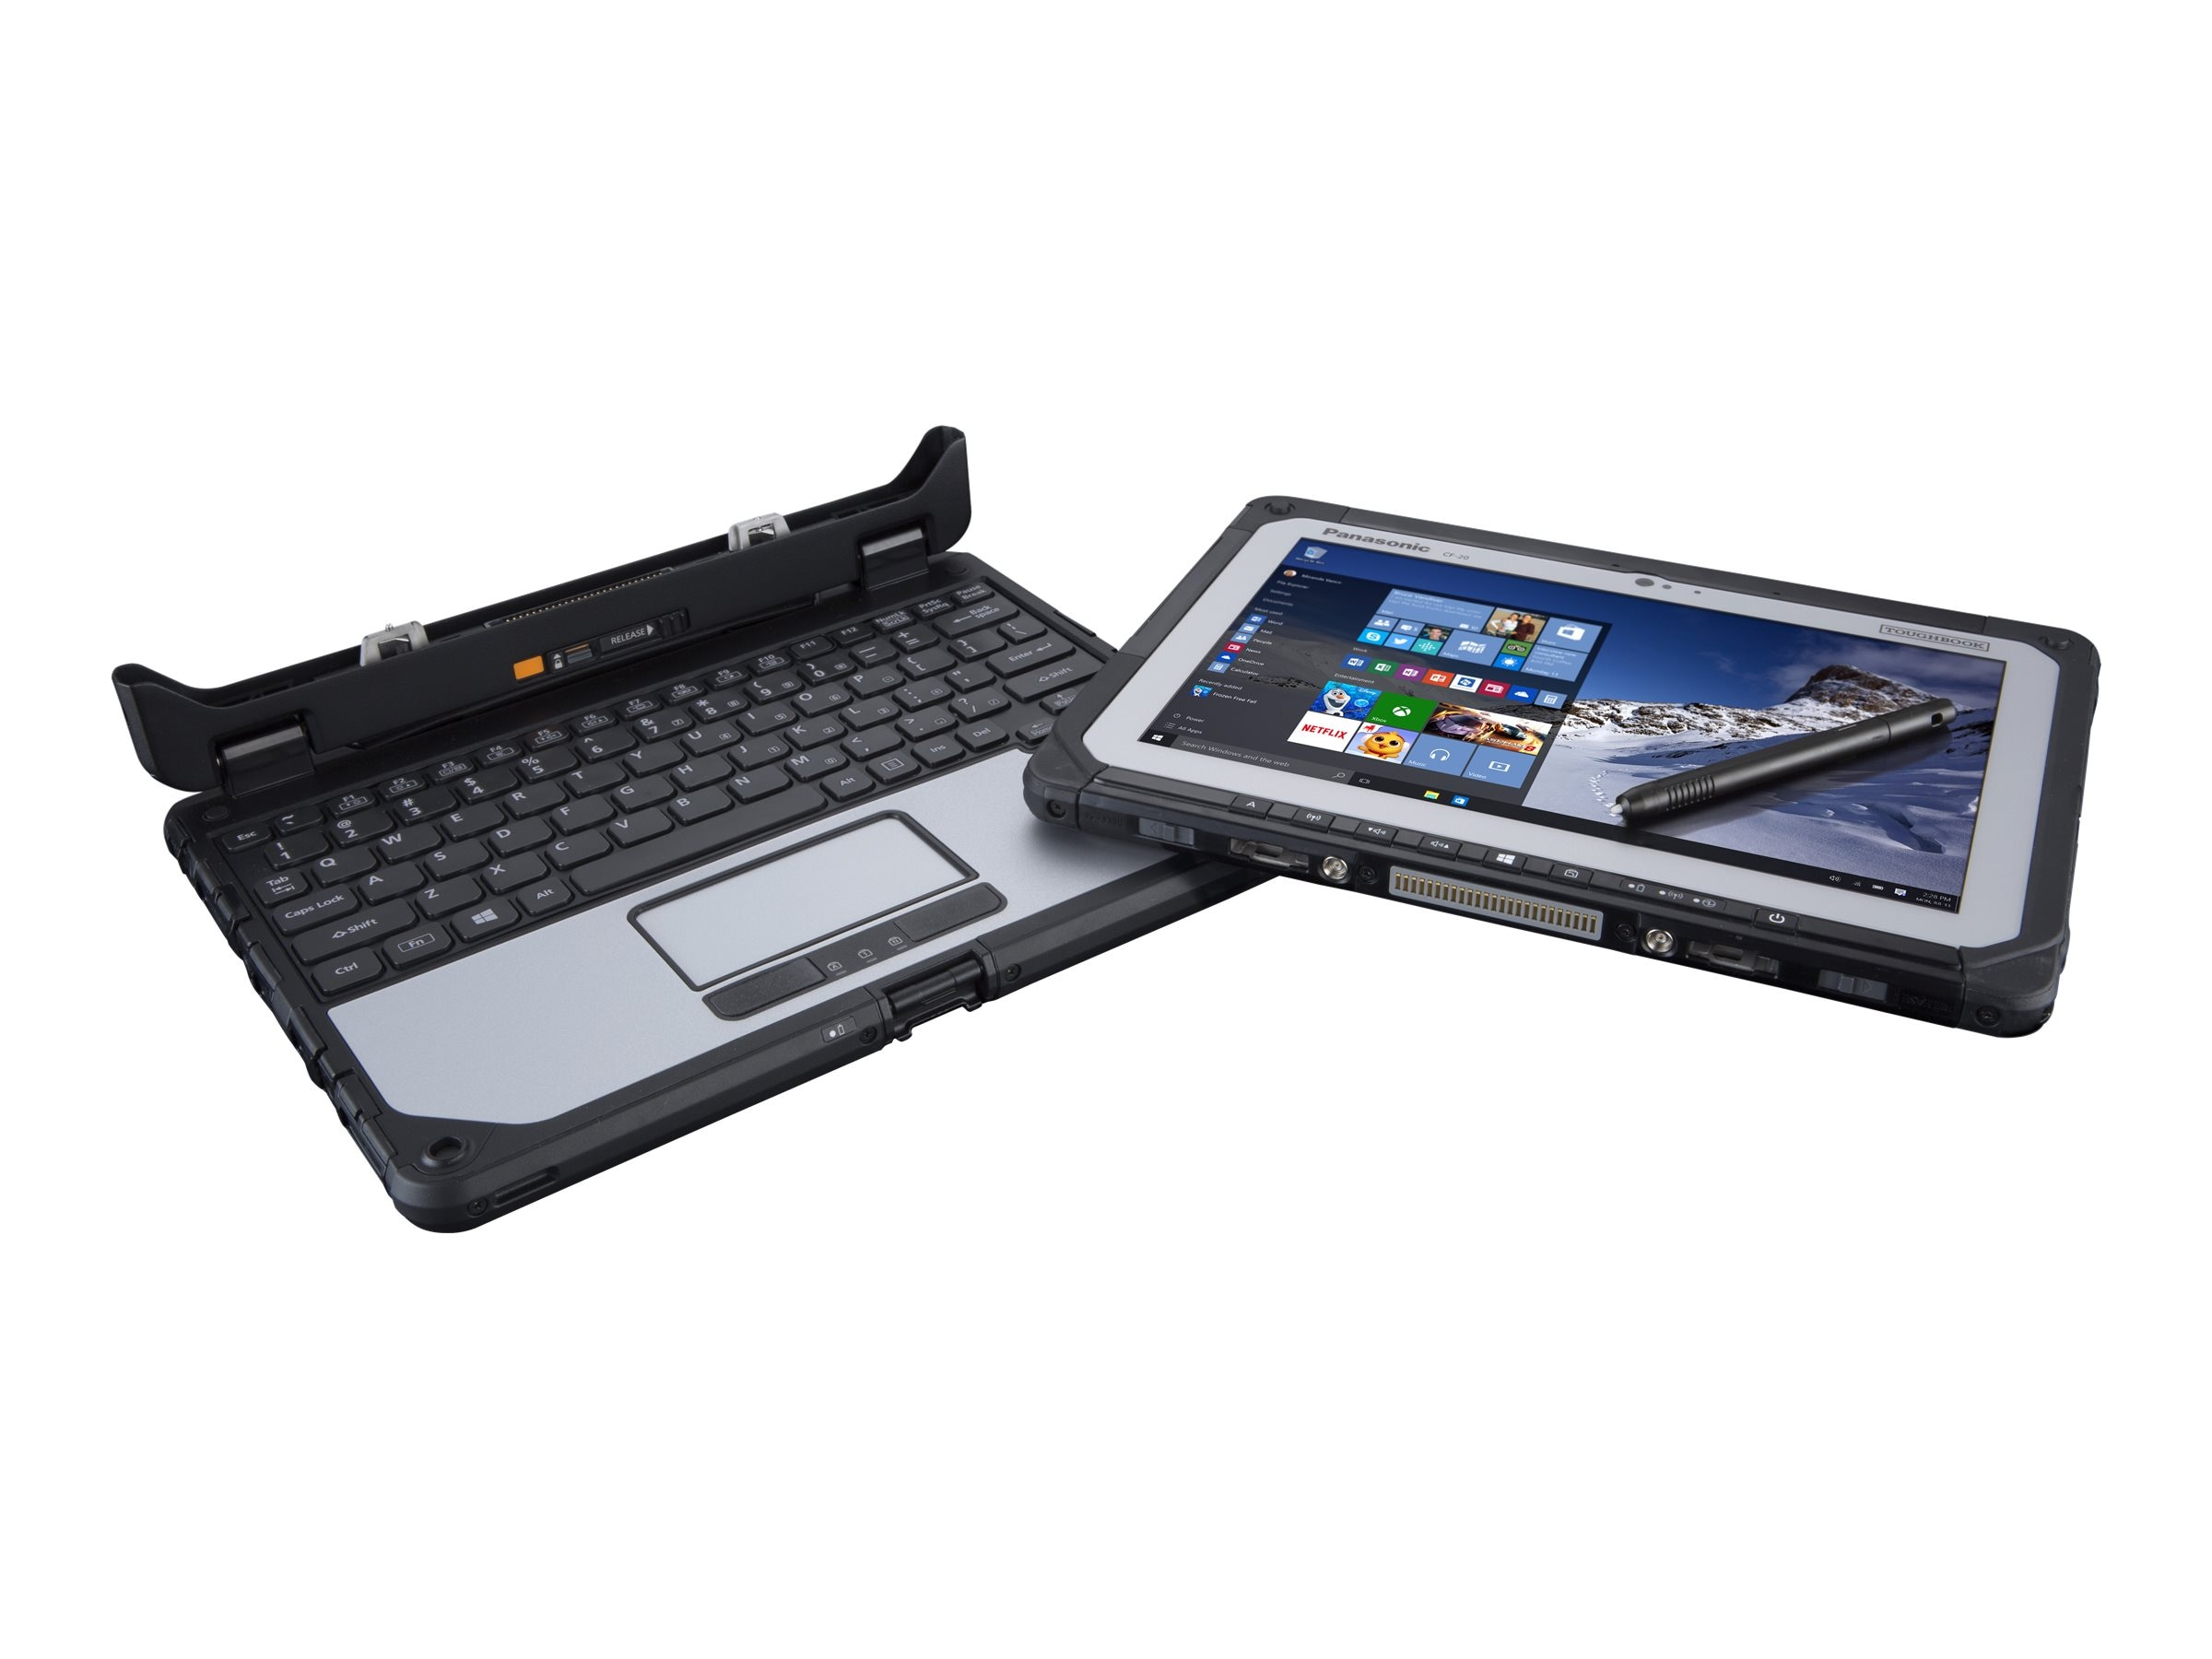 Panasonic Toughbook 20 vPro Core M5-6Y57 1.1GHz 10.1 WUXGA MT W7 (W10P COA), CF-20C0104KM